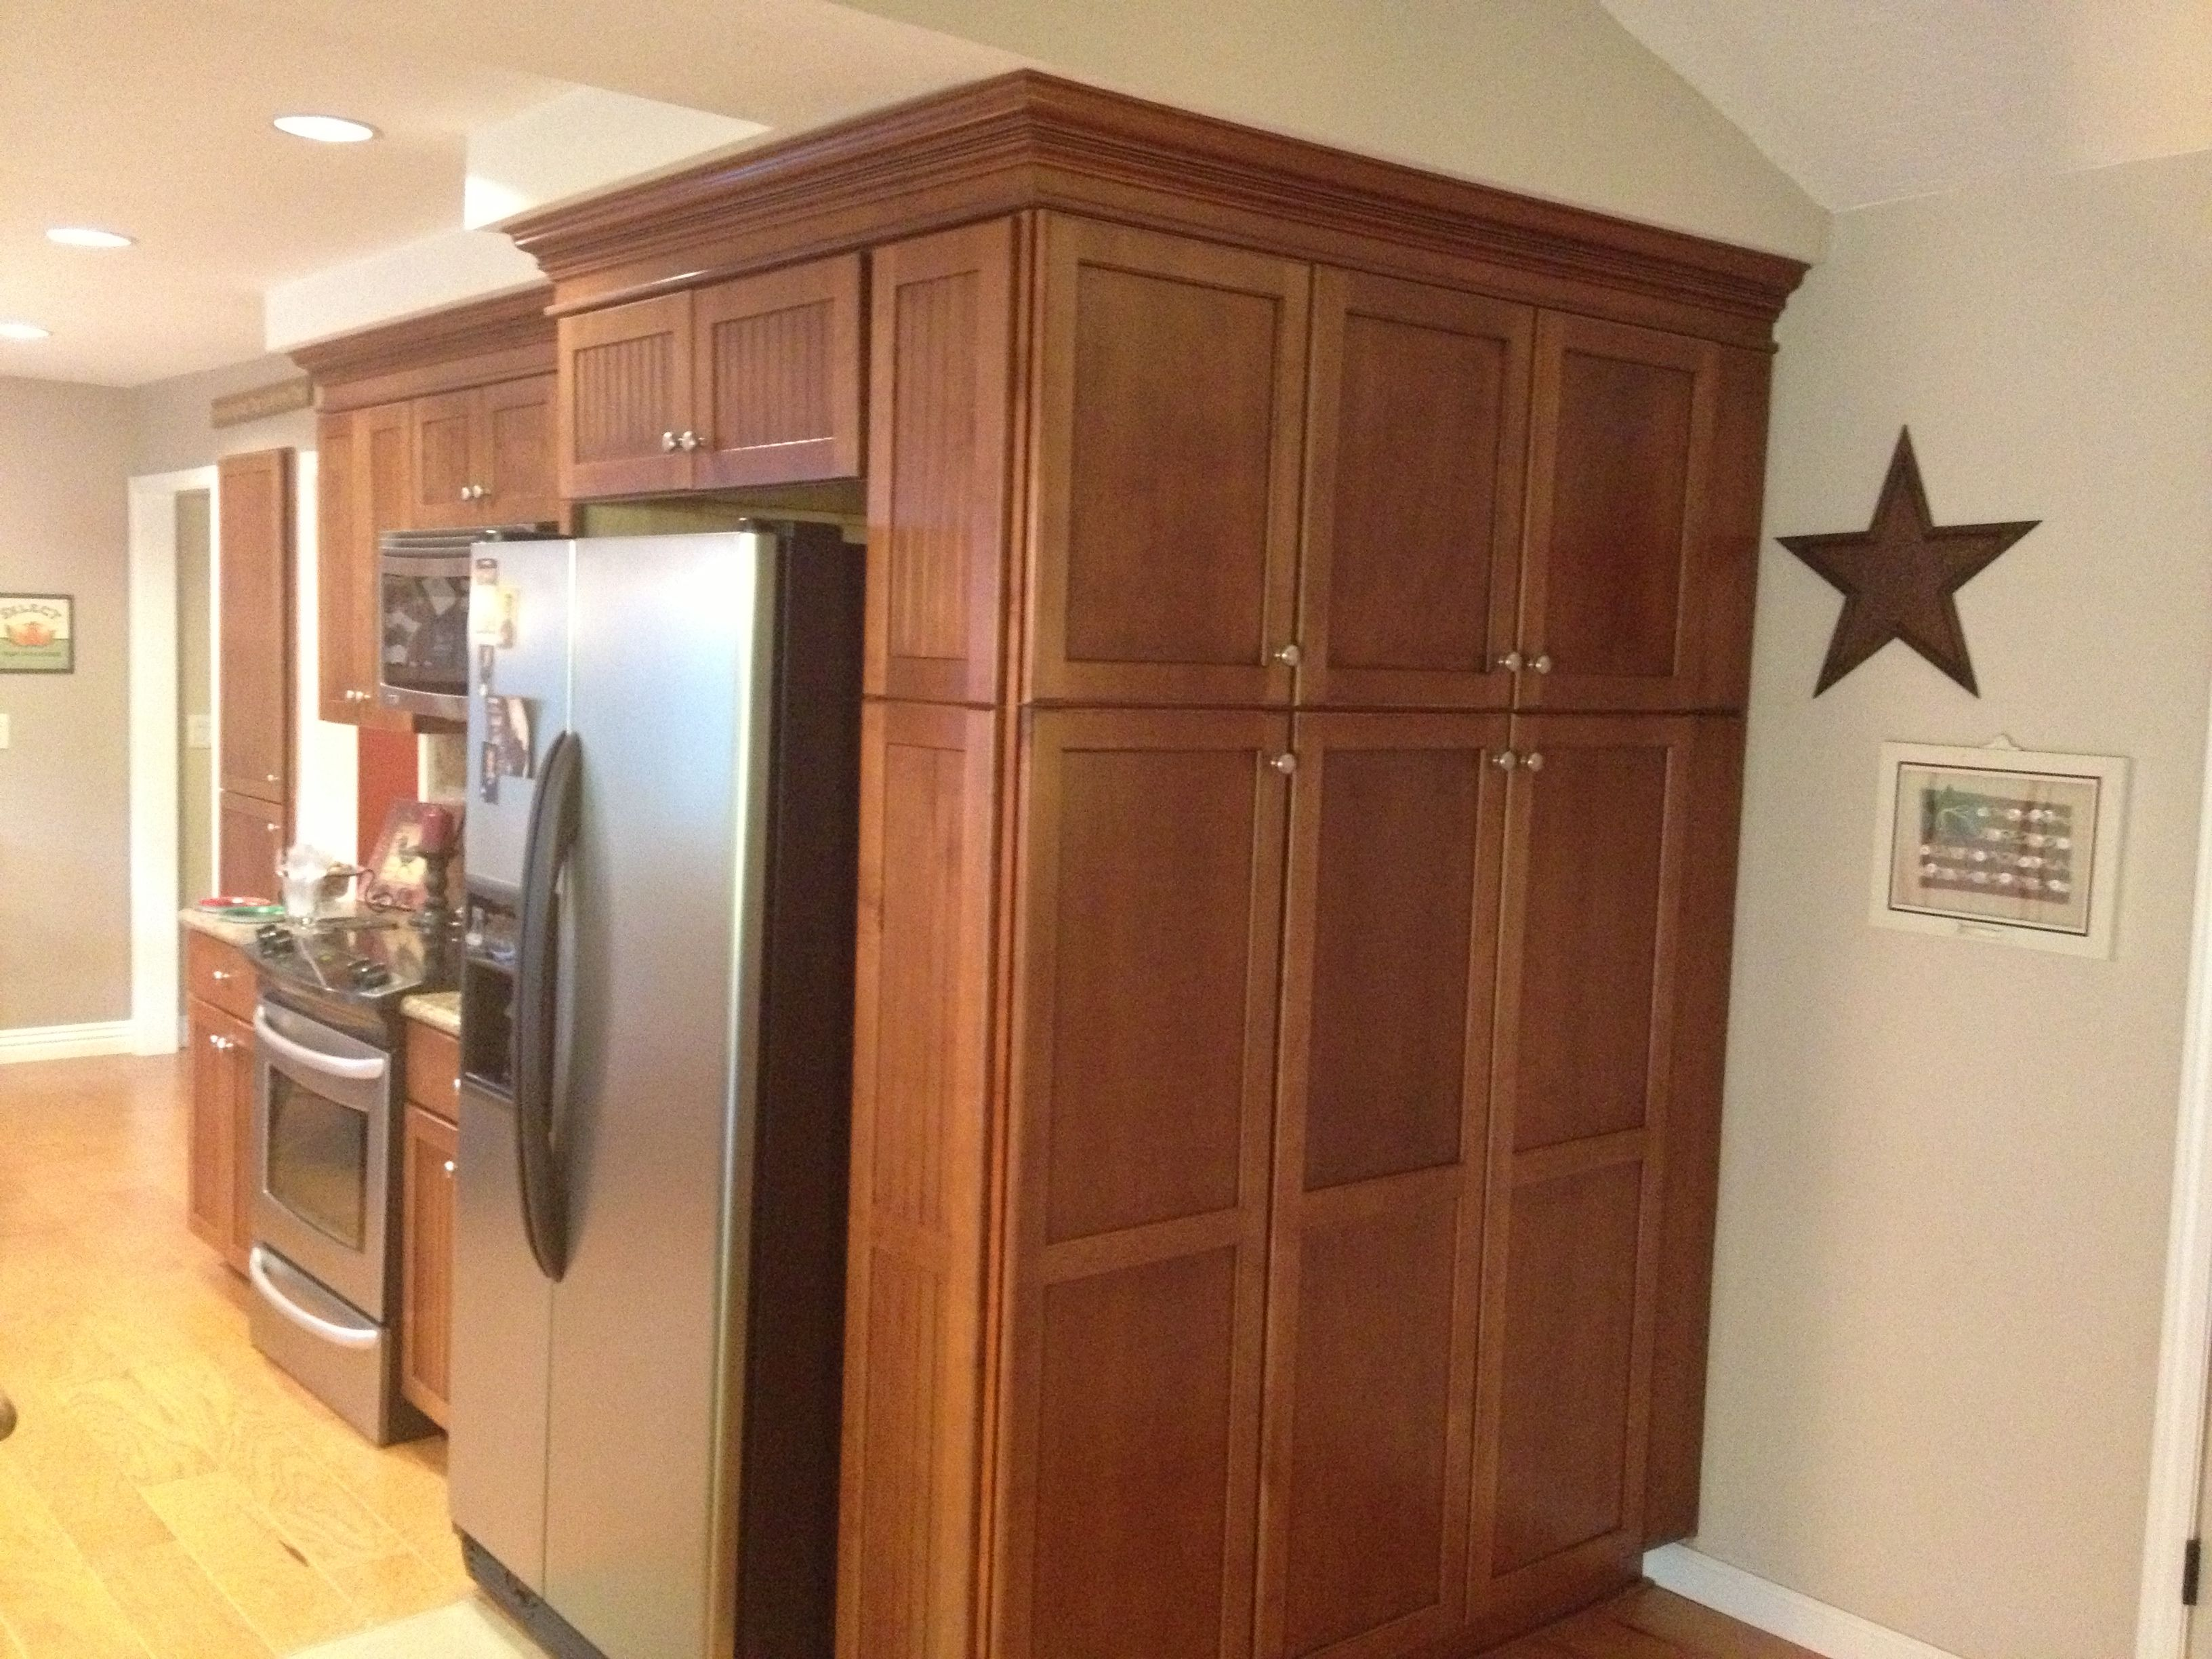 Kitchen Cabinets Add More Space To Kitchen By Wrapping Cabinets Around Corner Small White Bathrooms Pantry Design Storage Solutions Closet